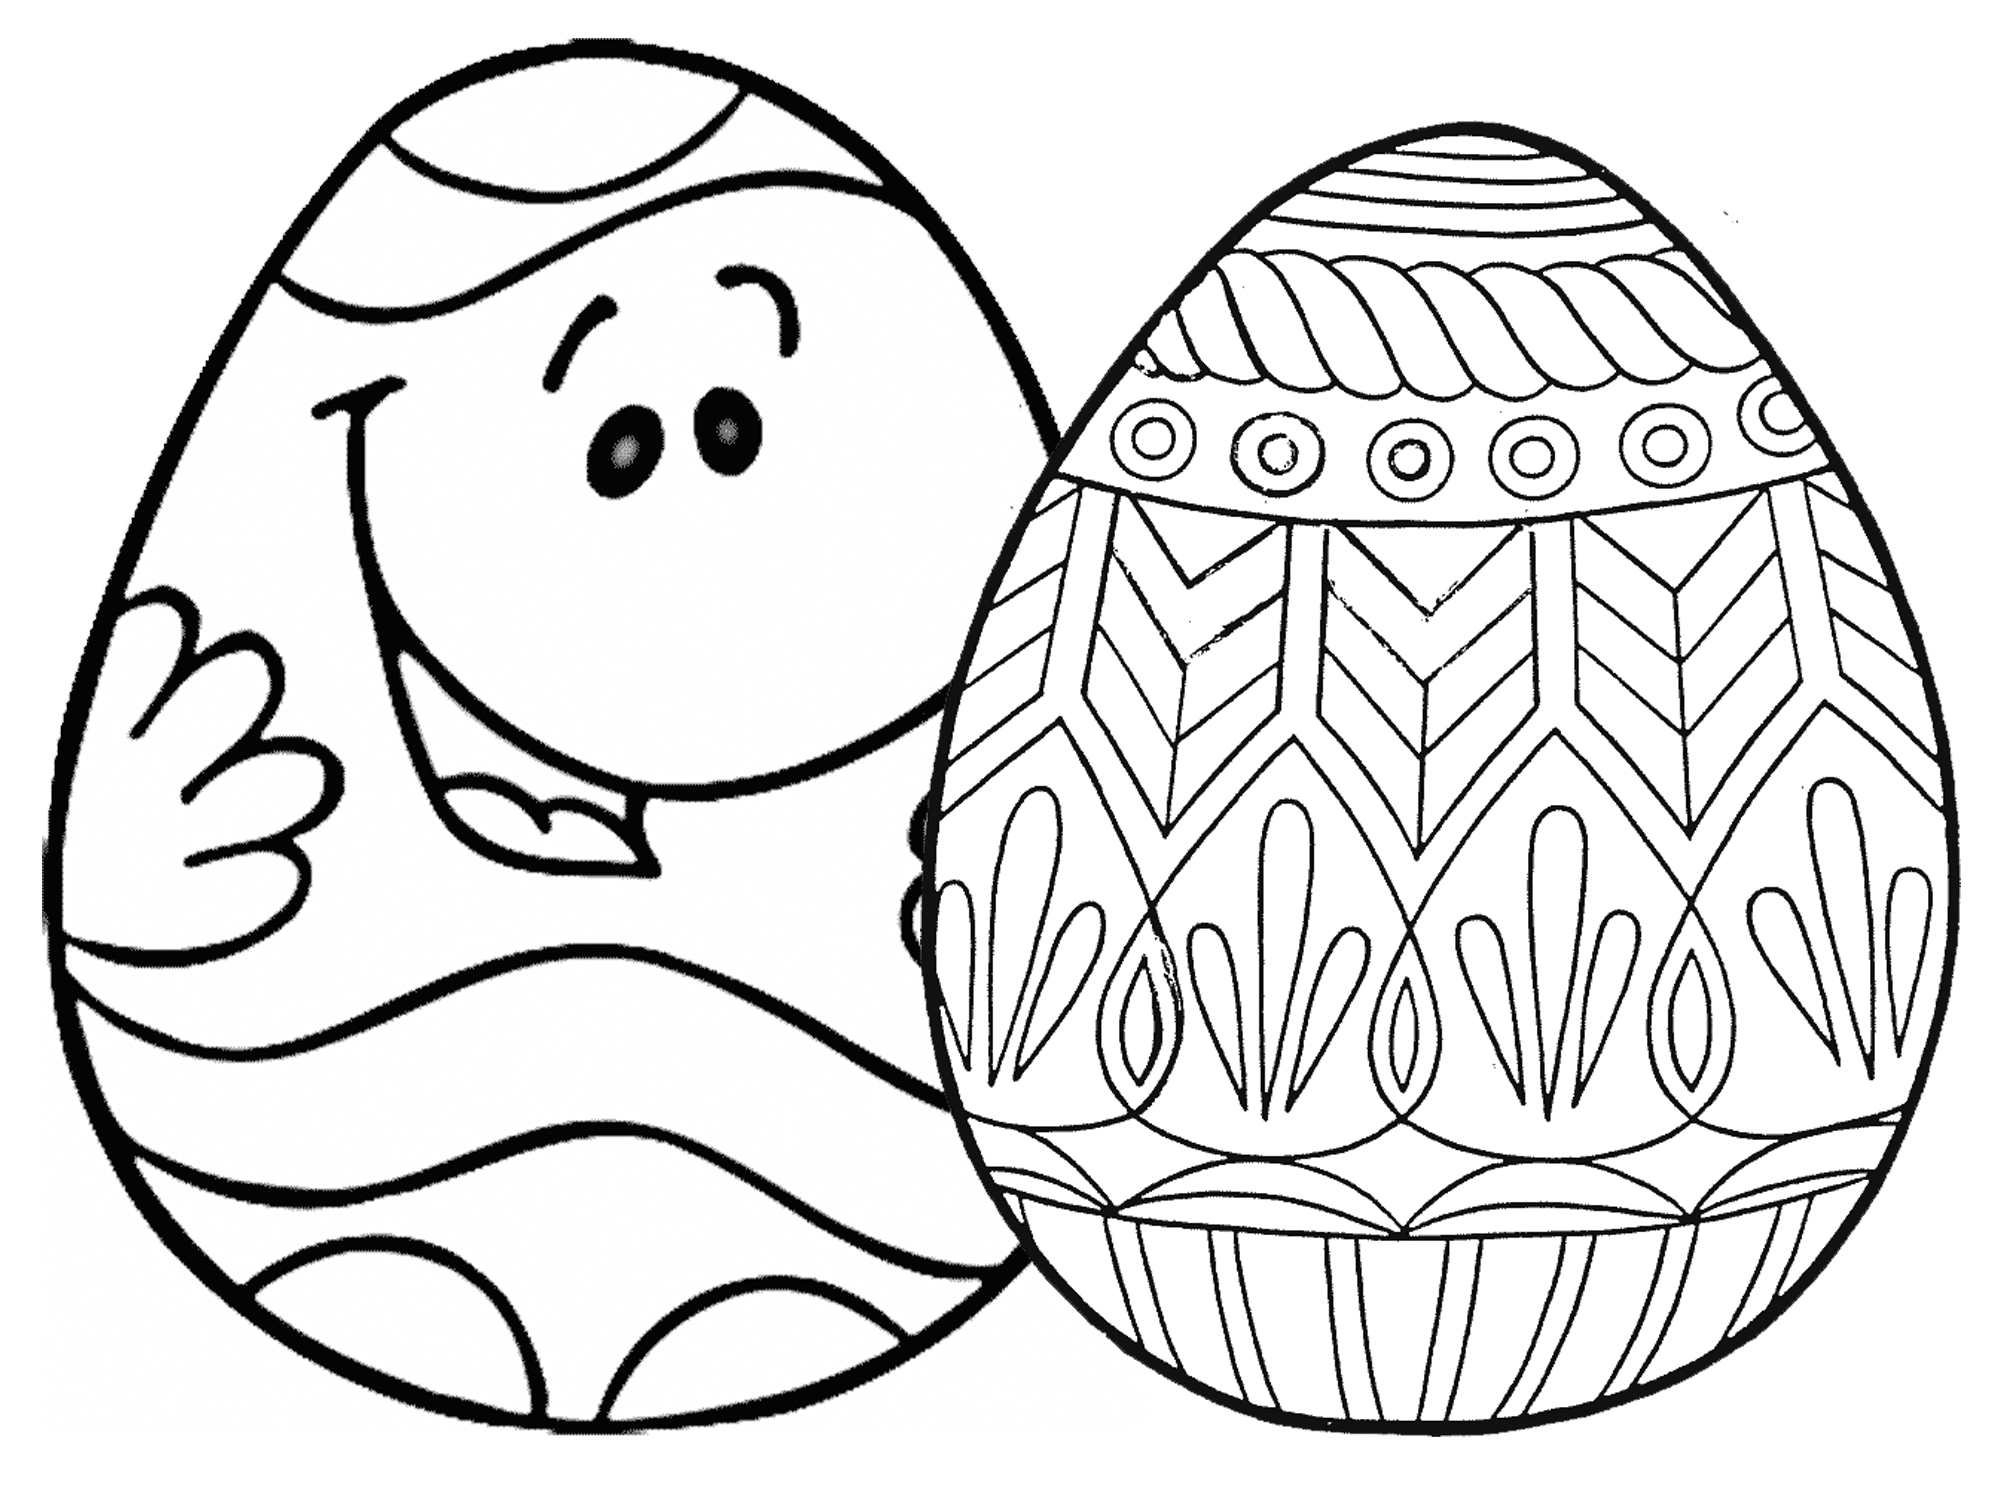 coloring easter egg free easter egg coloring pages holidappy coloring egg easter